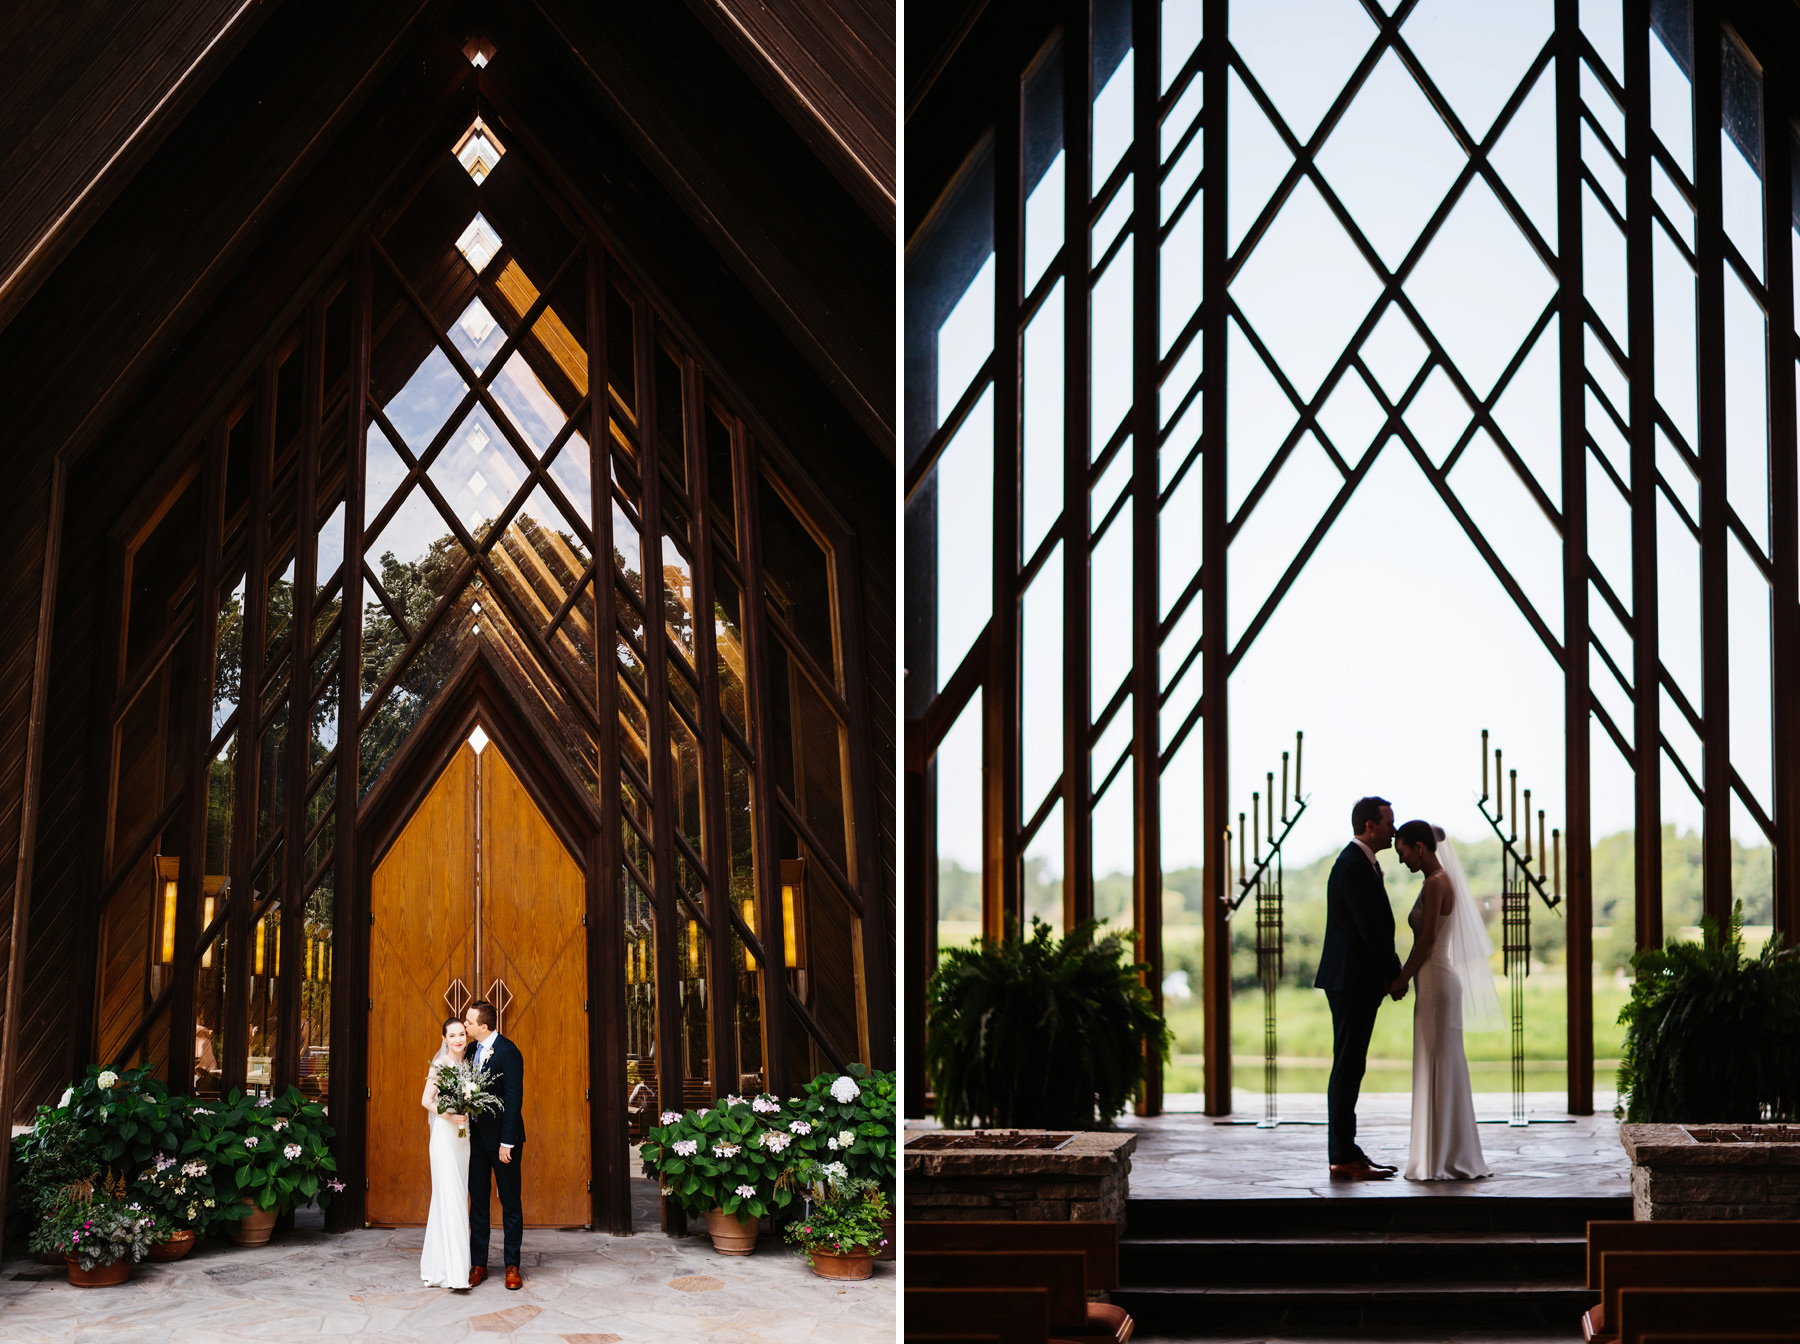 Jordan and Josh's Powell Garden's Chapel Elopement followed by an intimate reception at The Westside Local in Kansas city Missouri. Kindling Wedding Photography and Videography. Kansas City based wedding photographers available for travel and destination weddings.